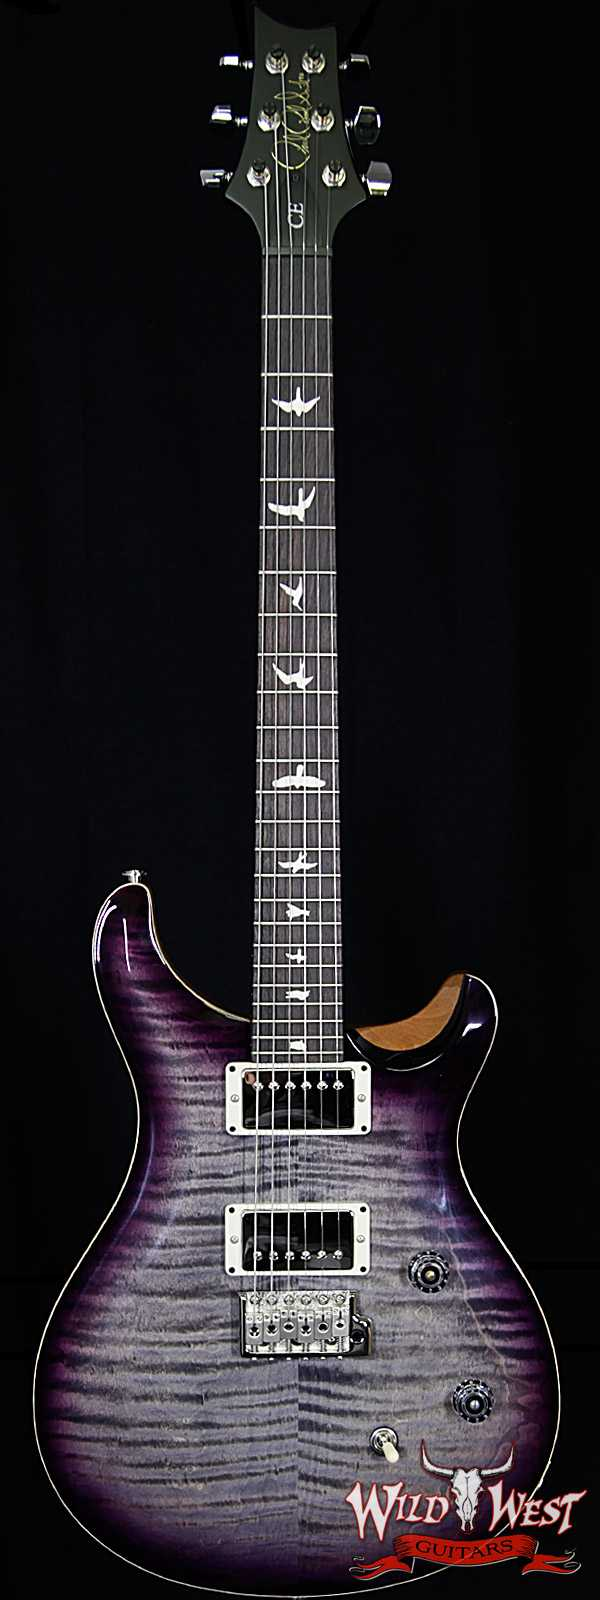 PRS Wild West Guitars Special Run CE 24 Flame Top 57/08 Pickups Faded Grey Black Purple Burst 251442